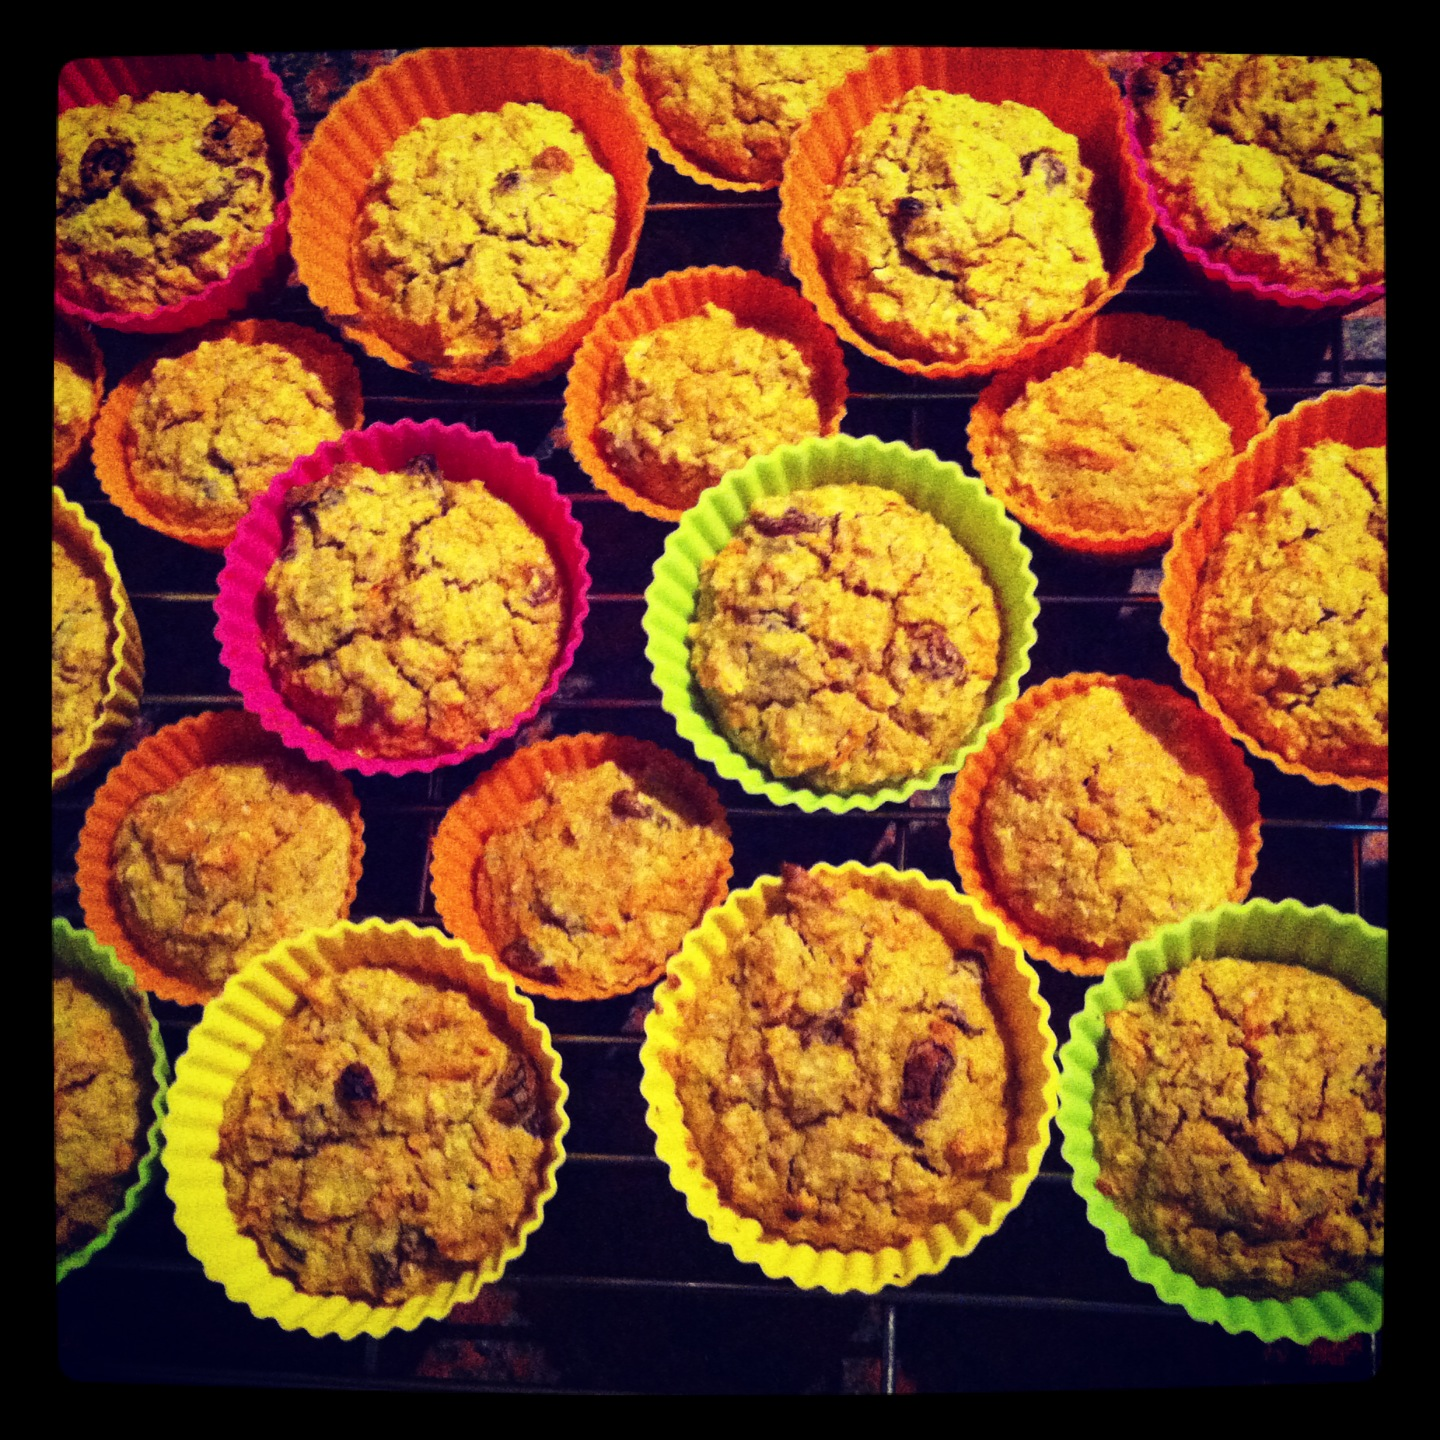 Carrot Oatmeal Muffins. Gluten Free, great for little ones.